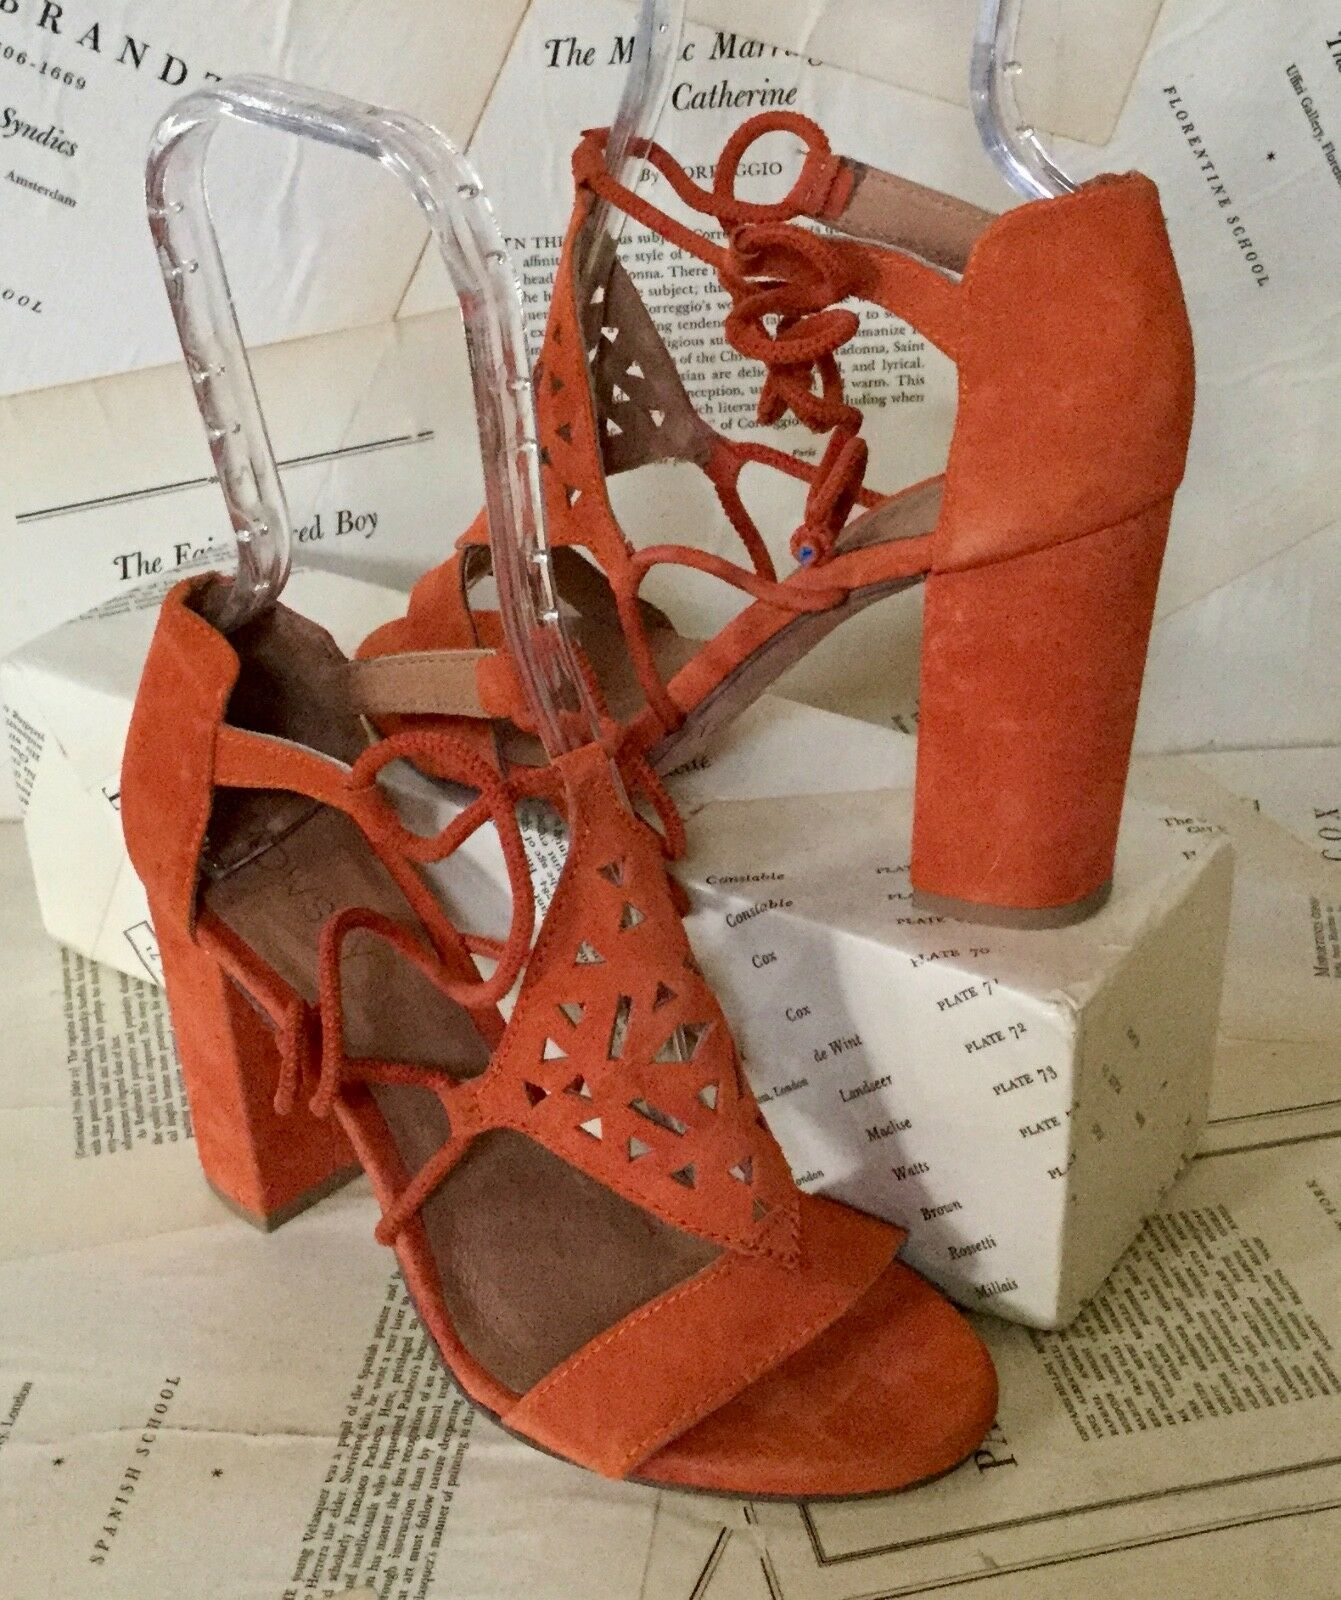 NEW Howsty Howsty Howsty arancia Suede Lasercut Heel Ankle Tie Sandals 37 6.5-7 5d032c